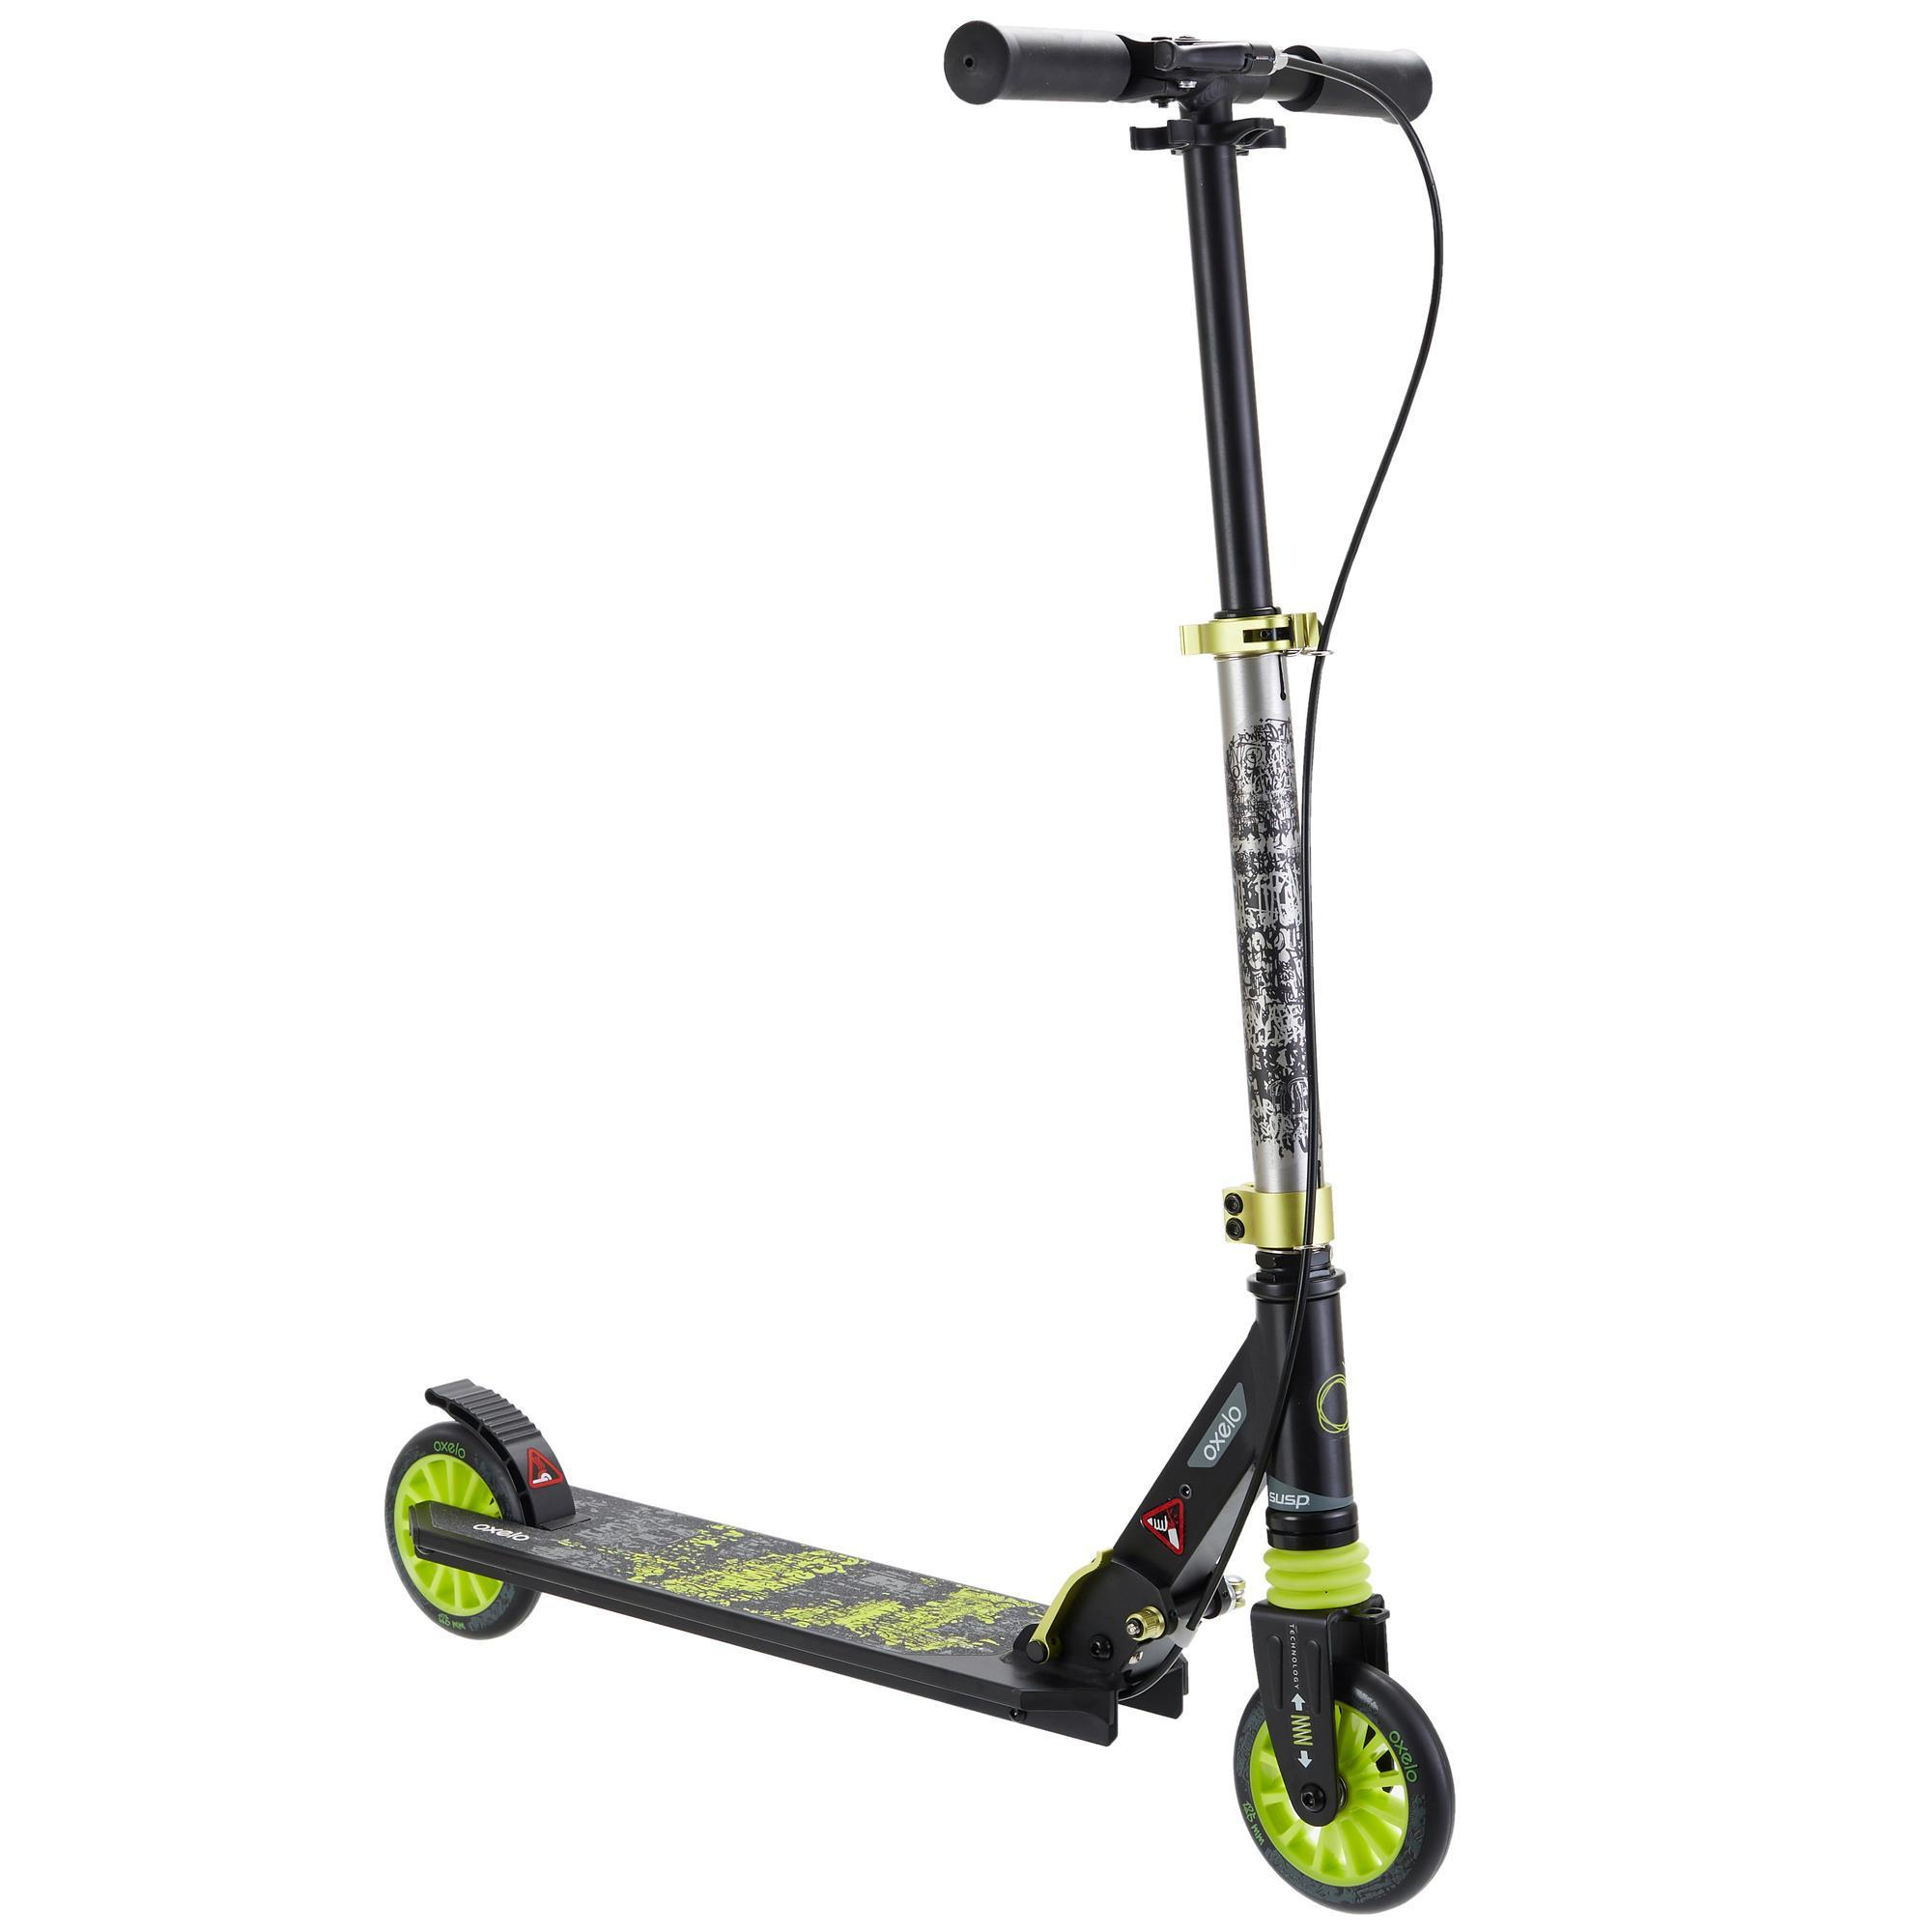 Scooter Kinder Kaufen Oxelo Decathlon